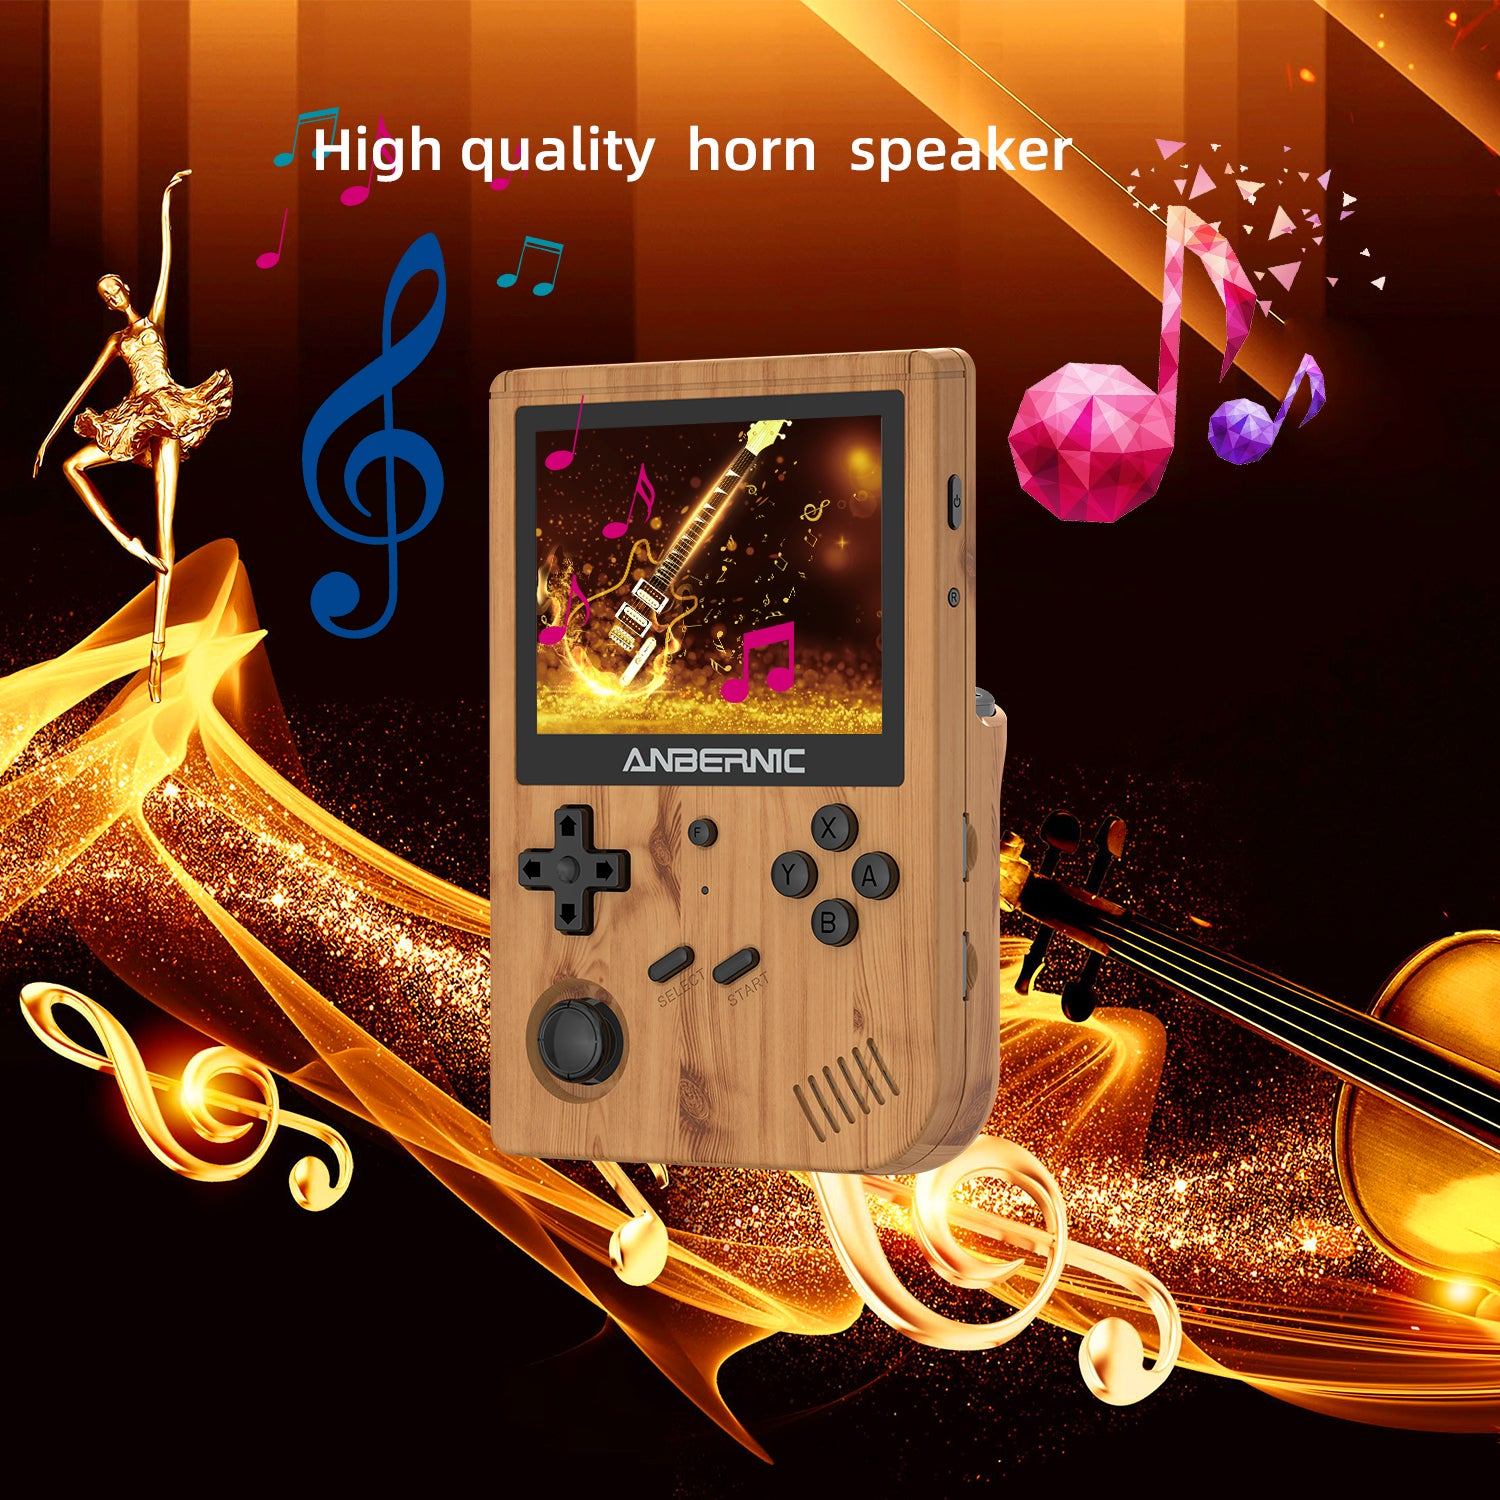 ANBERNIC RG351V Retro Gaming Handheld - Showing High-Quality Speakers